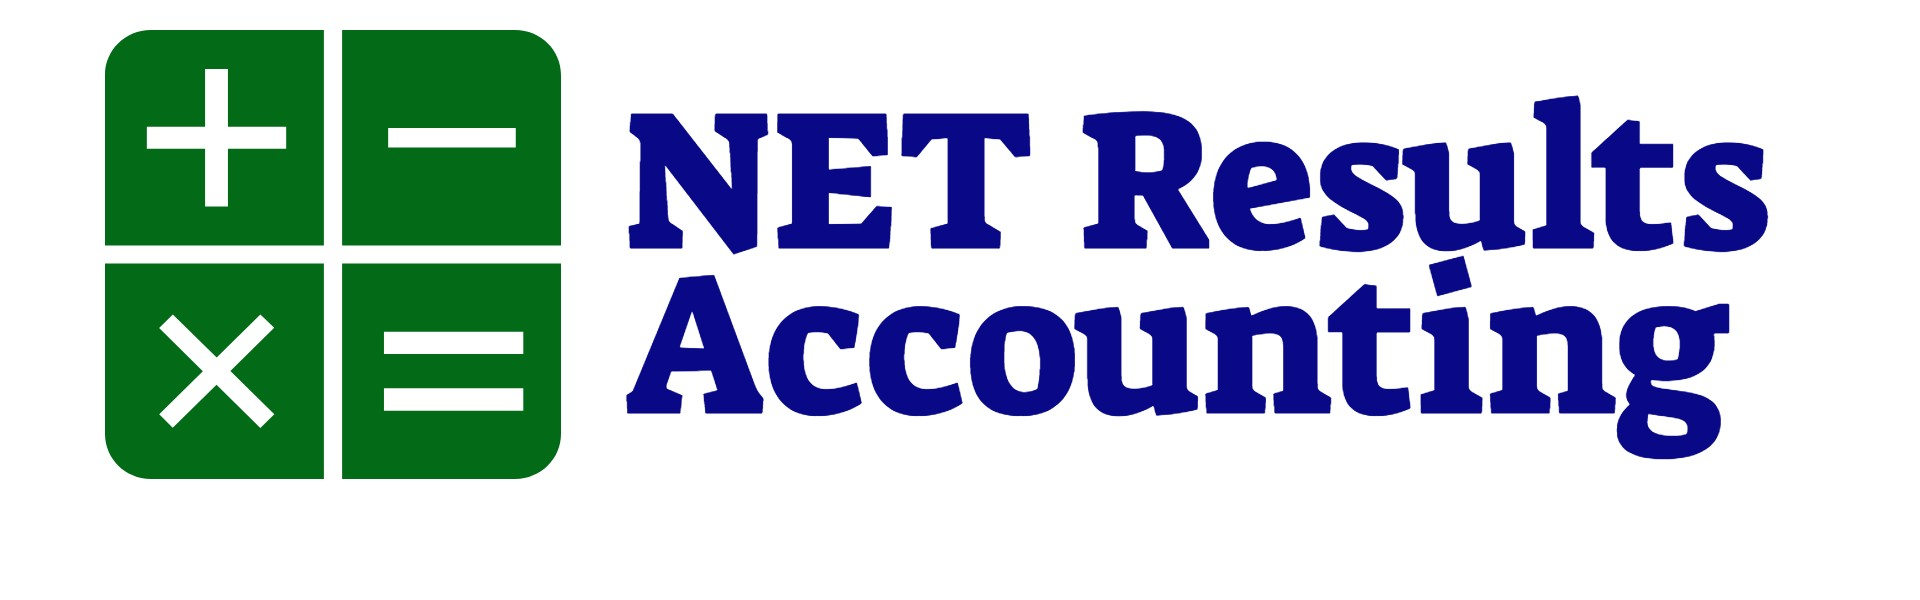 NET Results Accounting